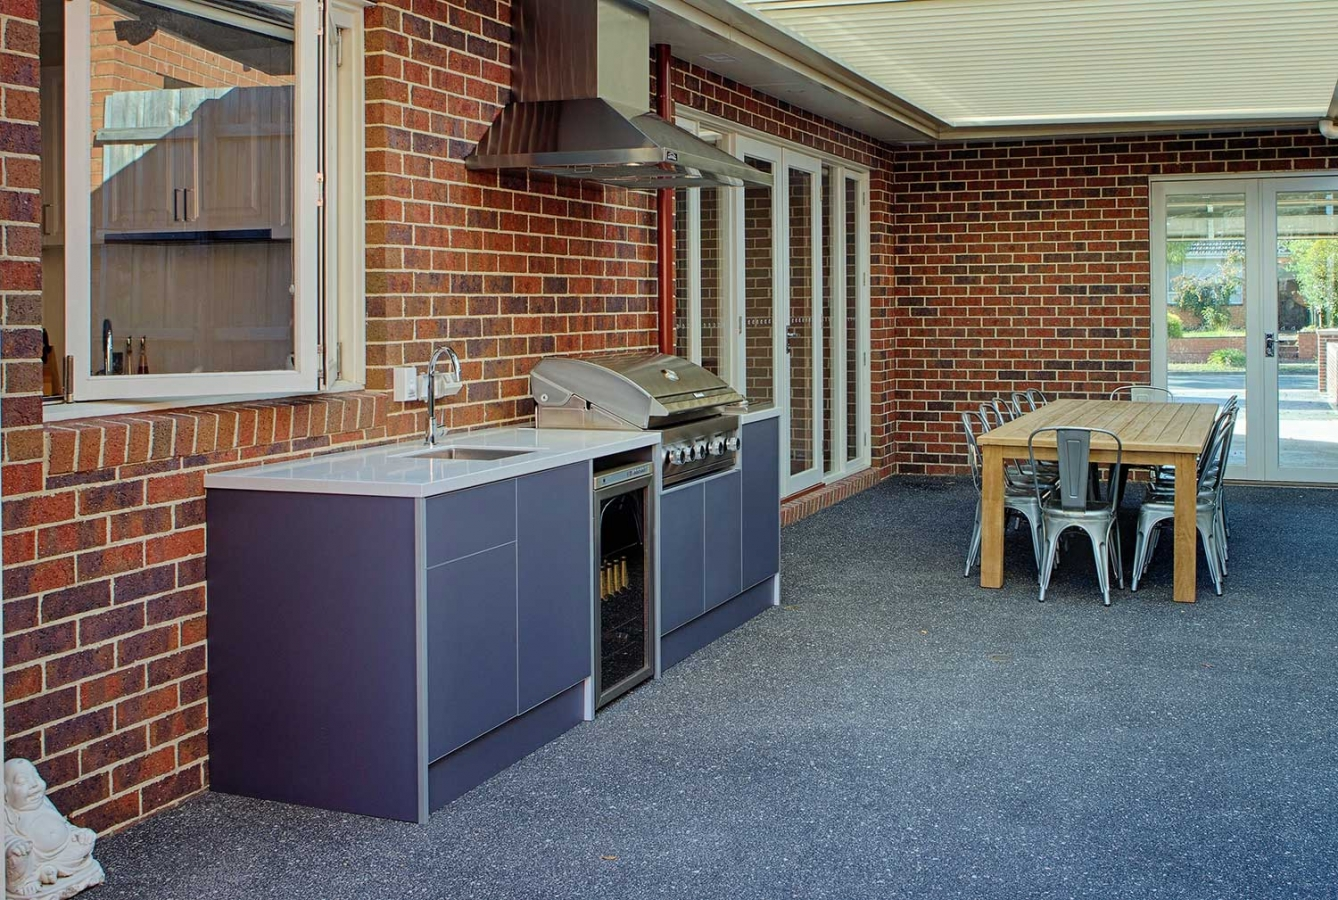 Rinnai-BBQ-Outdoor-Kitchen-by-LimeTree-Alfresco-in-Blackburn-Melbourne